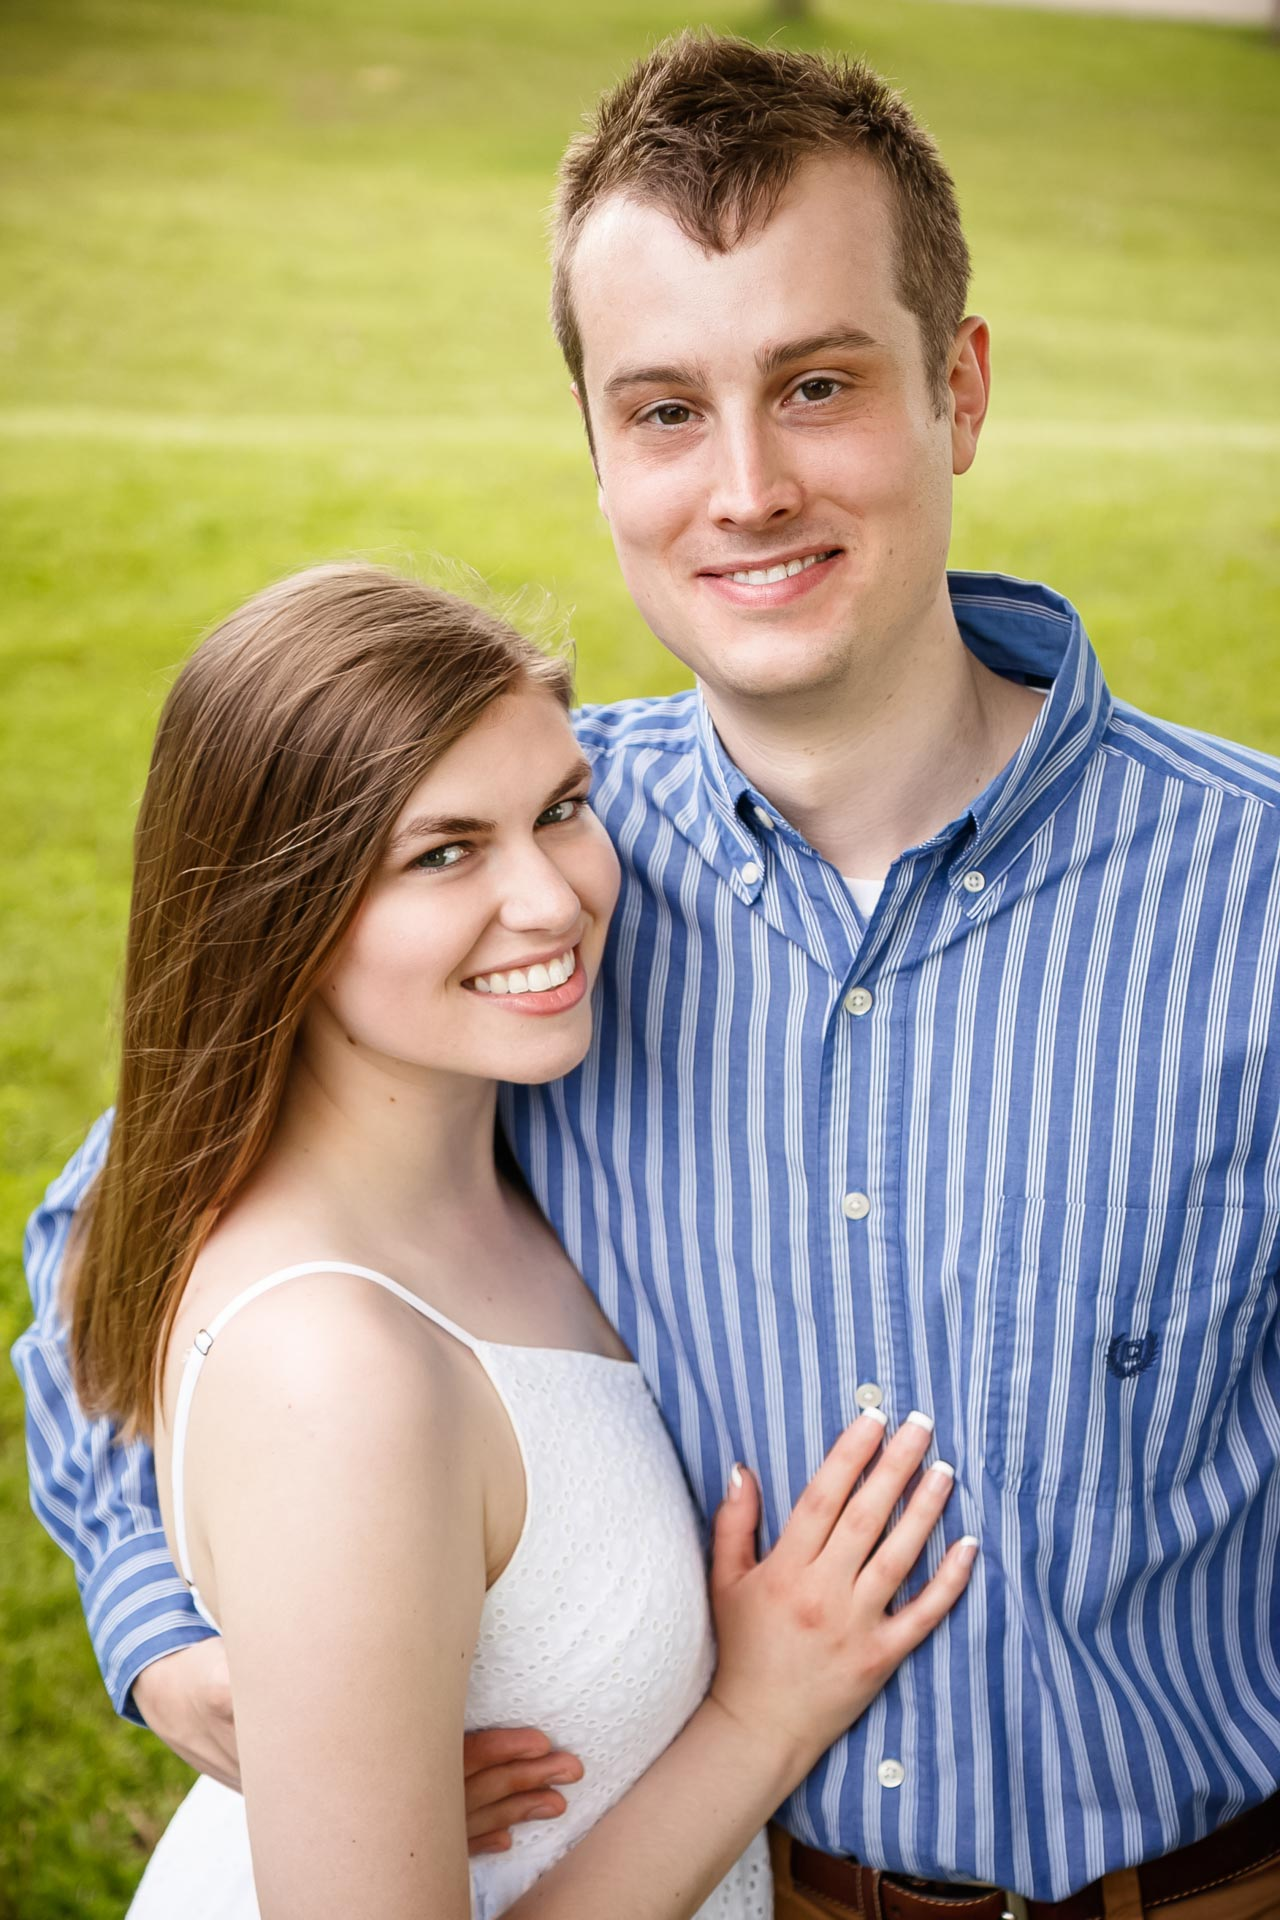 engagement-photos-voyageur-park-de-pere-wisconsin-wi-adam-shea-photography-adam-shea-photography-green-bay-appleton-neenah-photographer-13.jpg